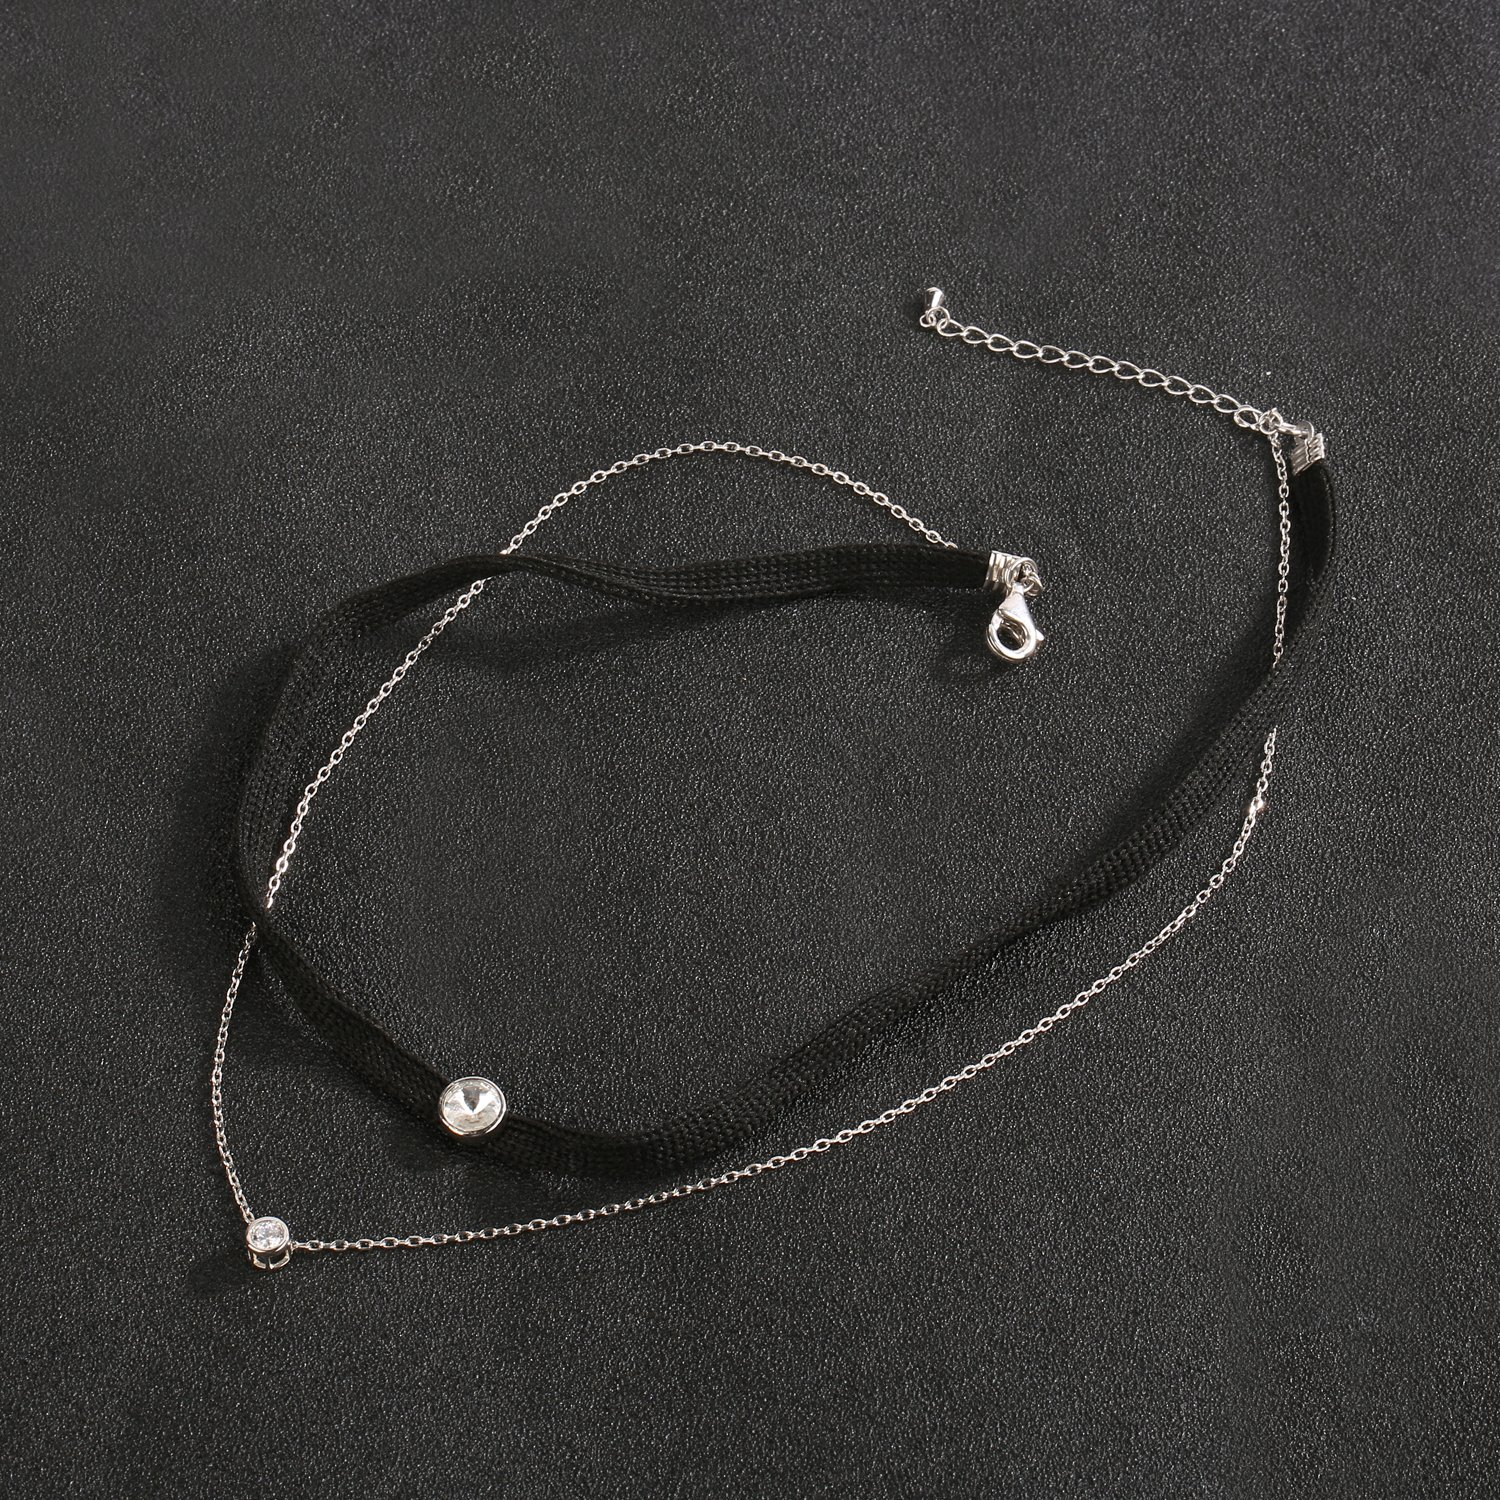 LOCHING Personality Elastic Black Cord Necklace Double Chain Necklaces Inlaid Zircon 925 Silver Double Collar Necklaces by LOCHING (Image #5)